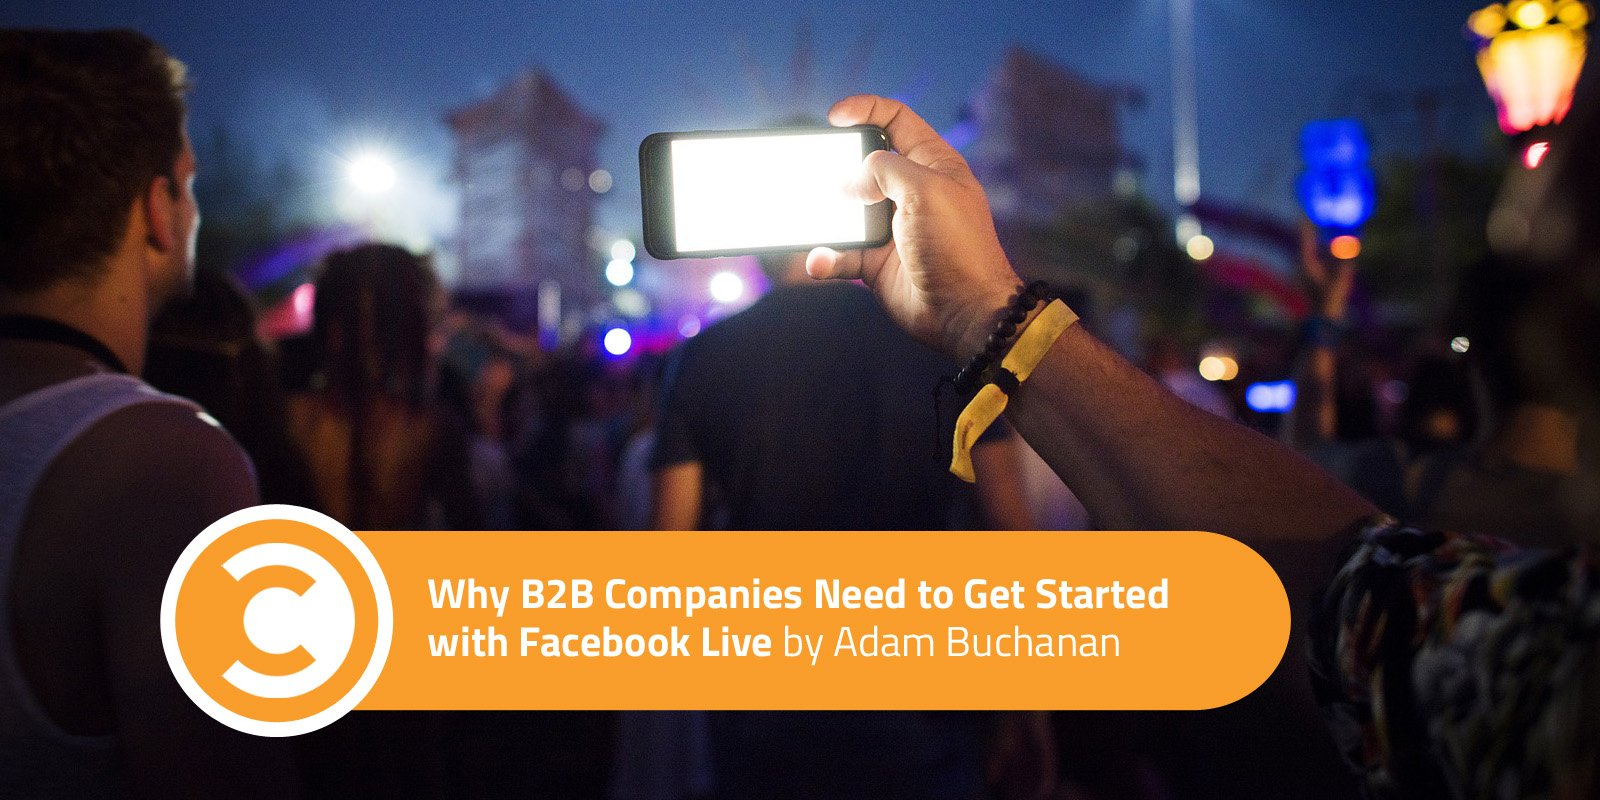 Why B2B Companies Need to Get Started with Facebook Live